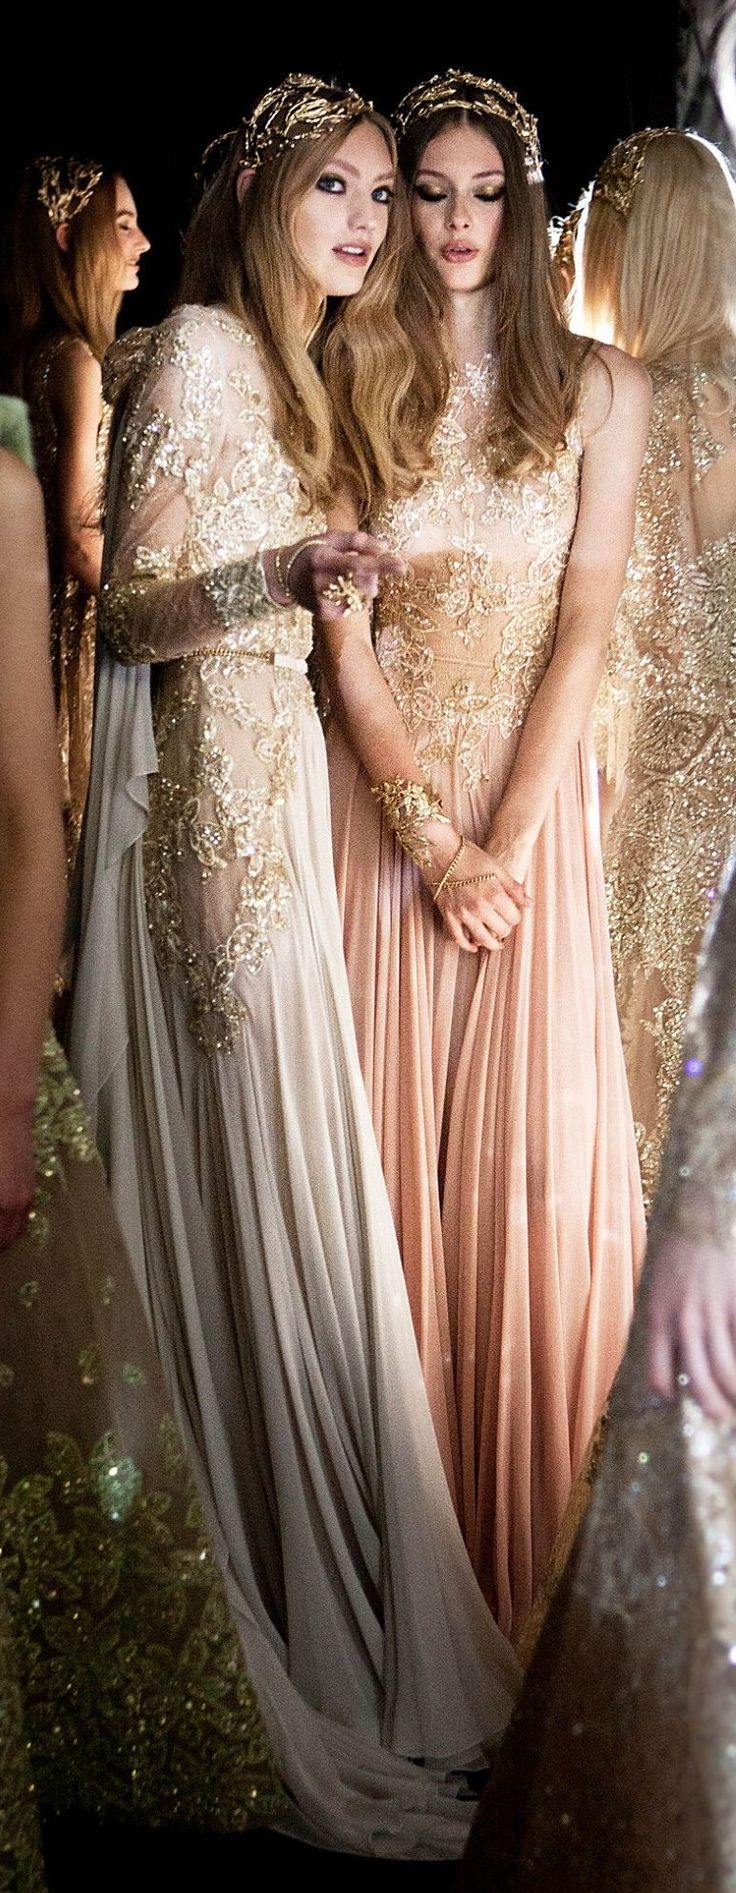 * graceful gowns* backstage at Elie Saab fashion show ♥